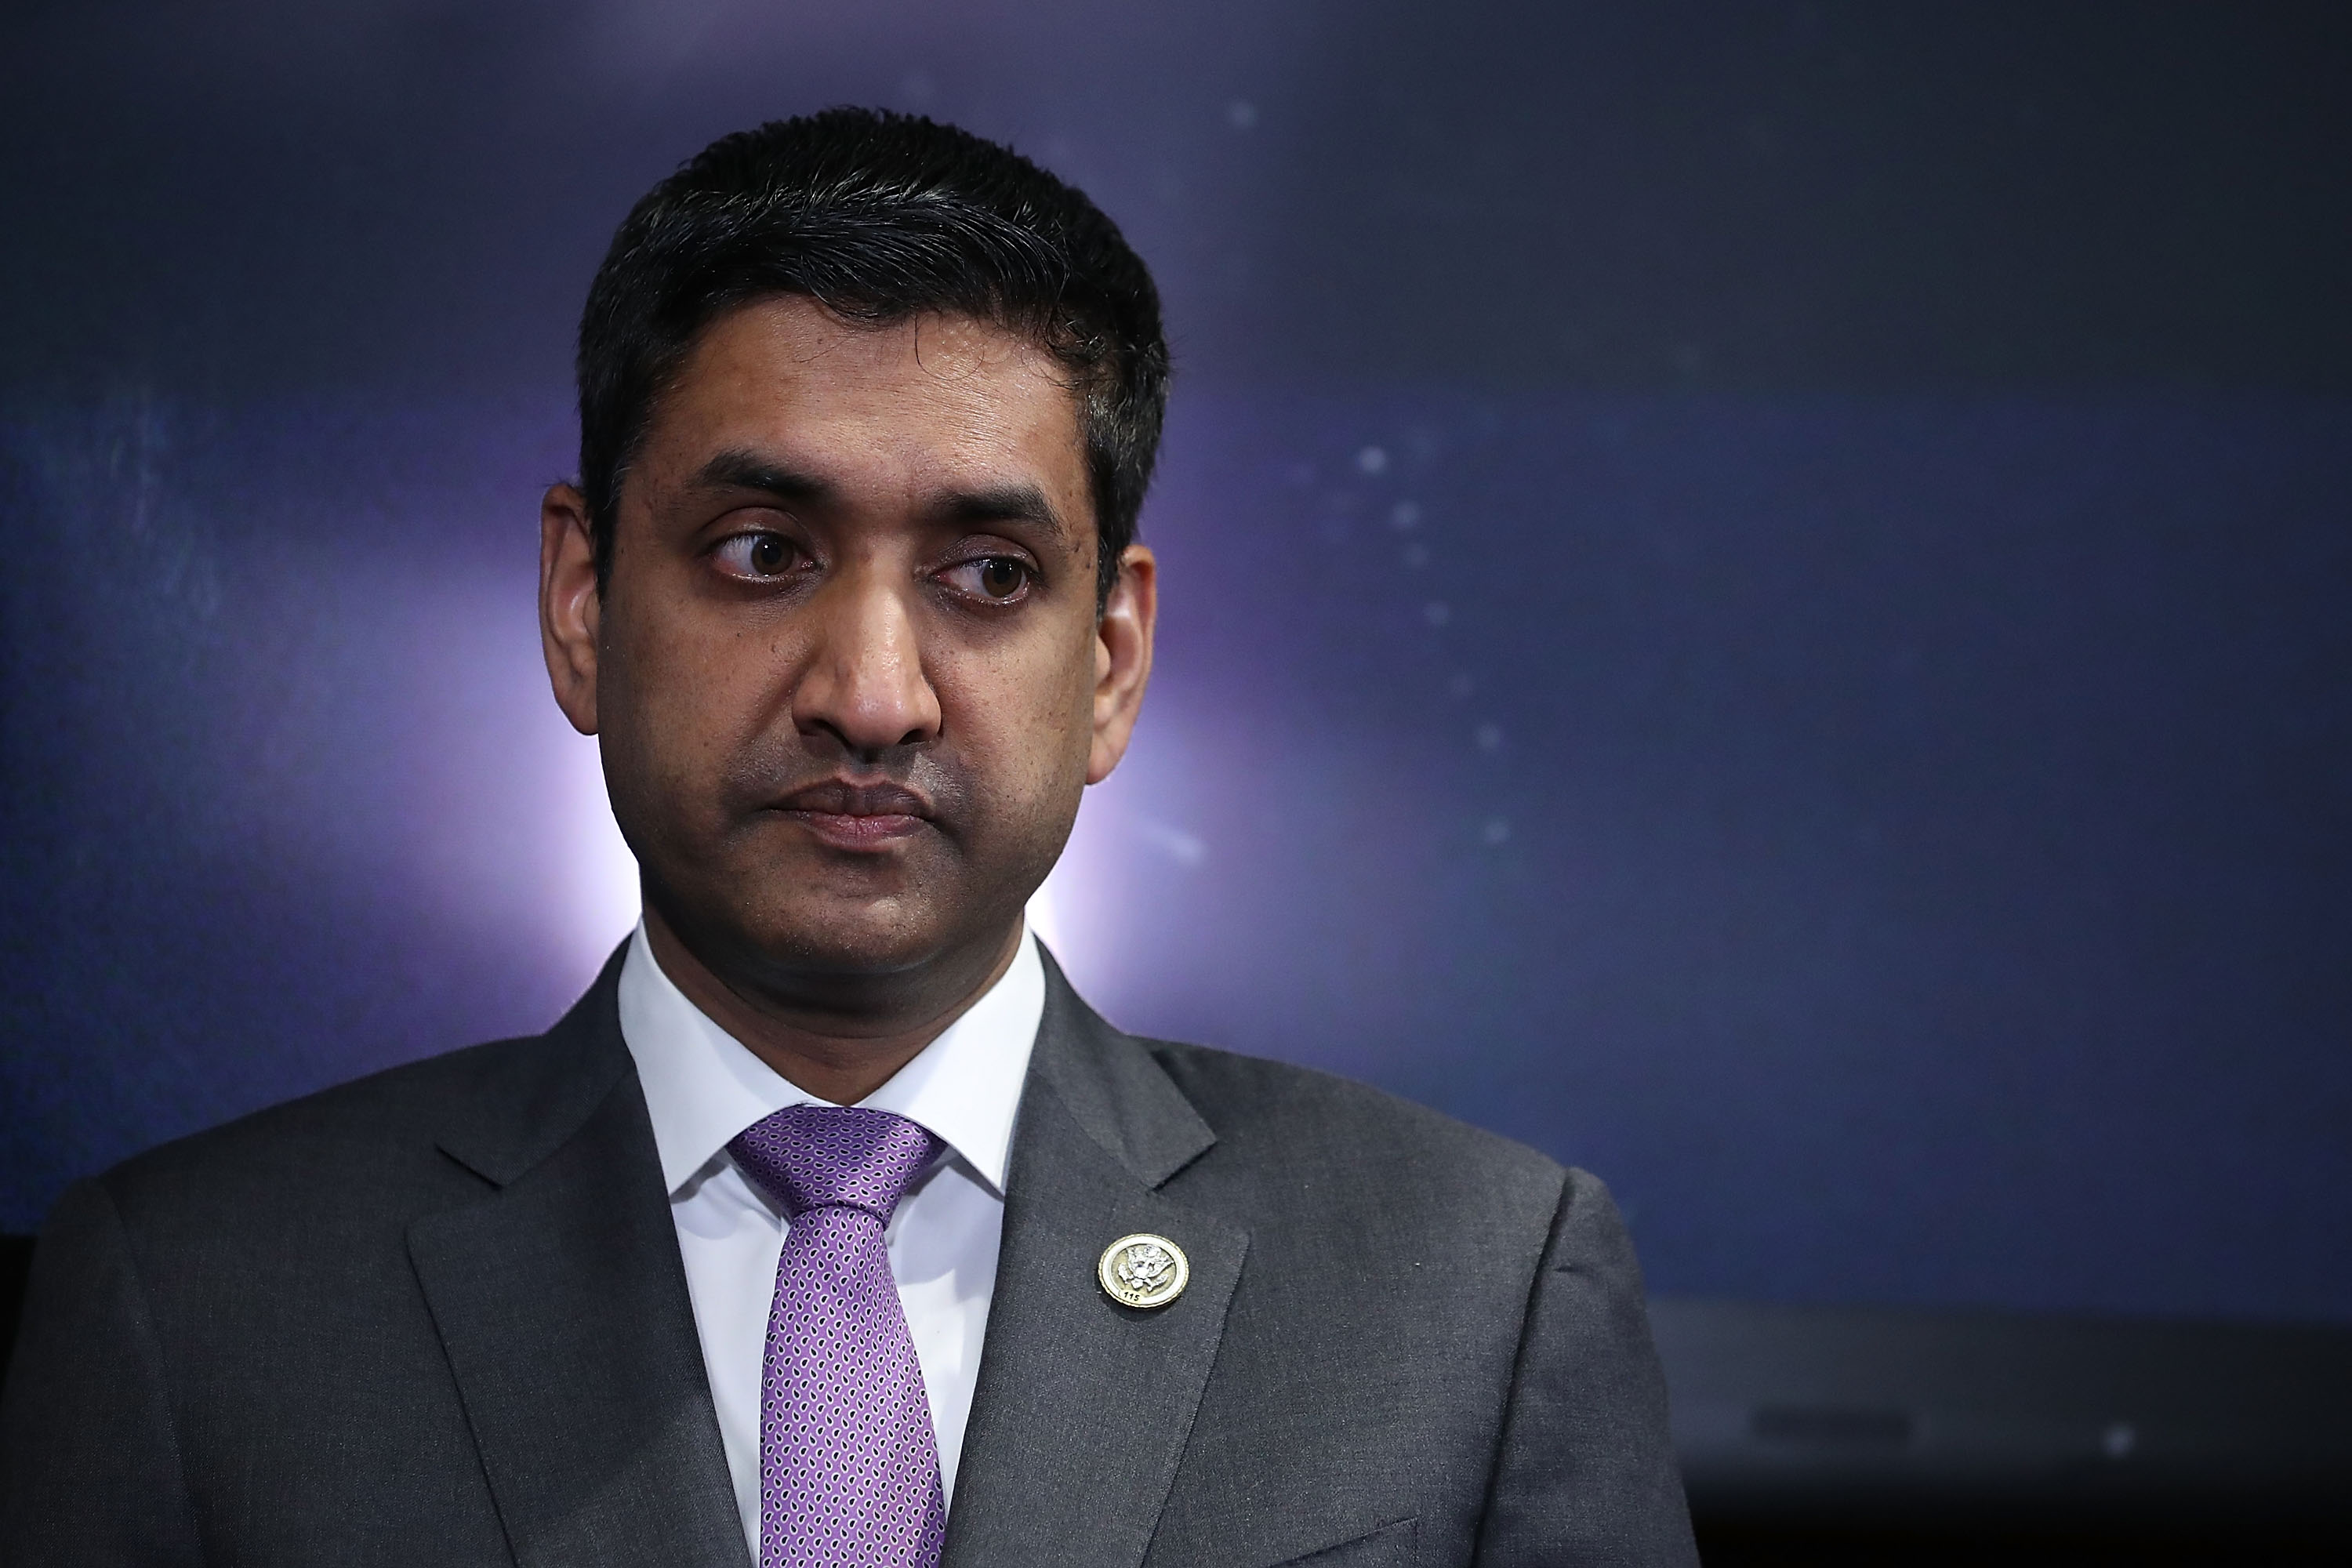 Reps Carolyn Maloney And Ro Khanna Announce New Sexual Harassment Legislation